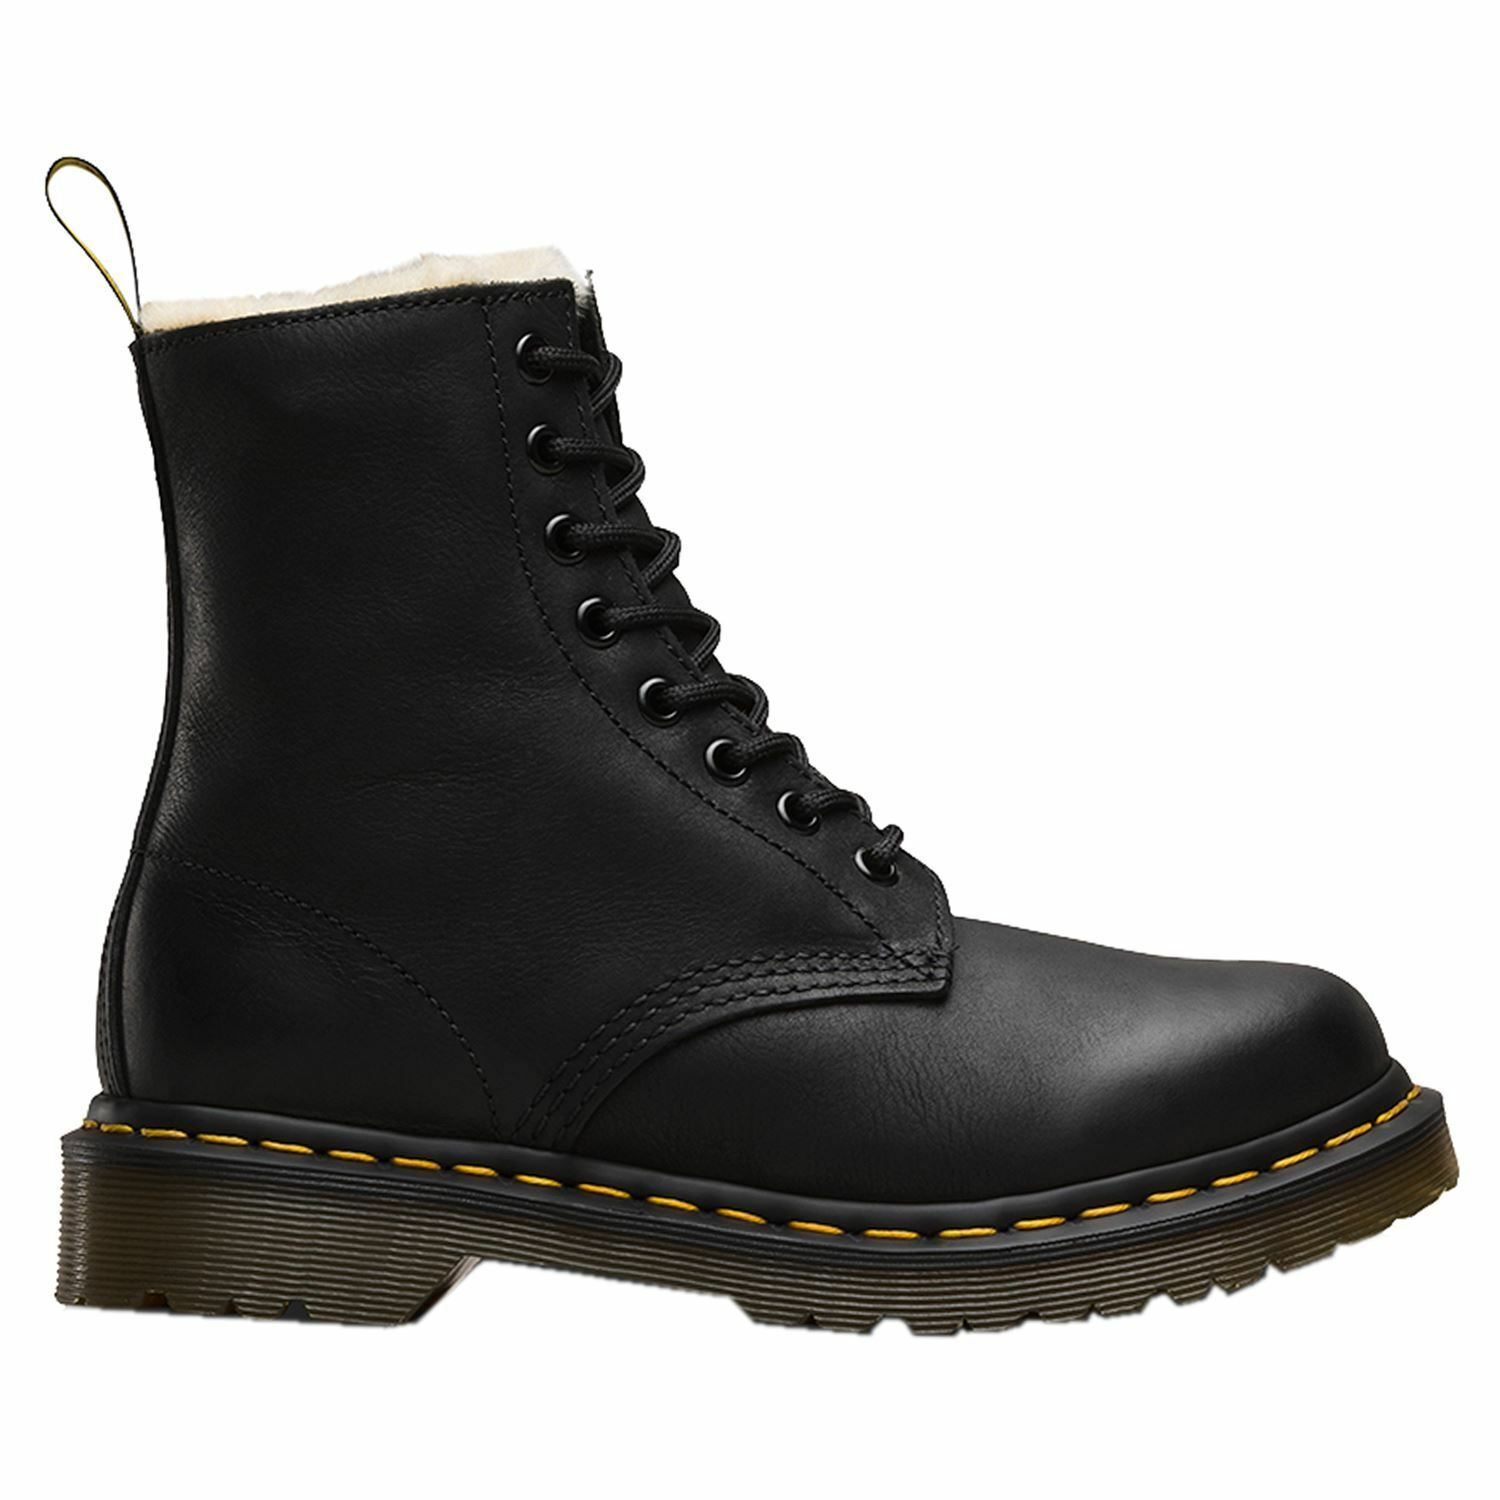 Grandes zapatos con descuento Dr.Martens Serena Burnished Woyming Black Womens Boots